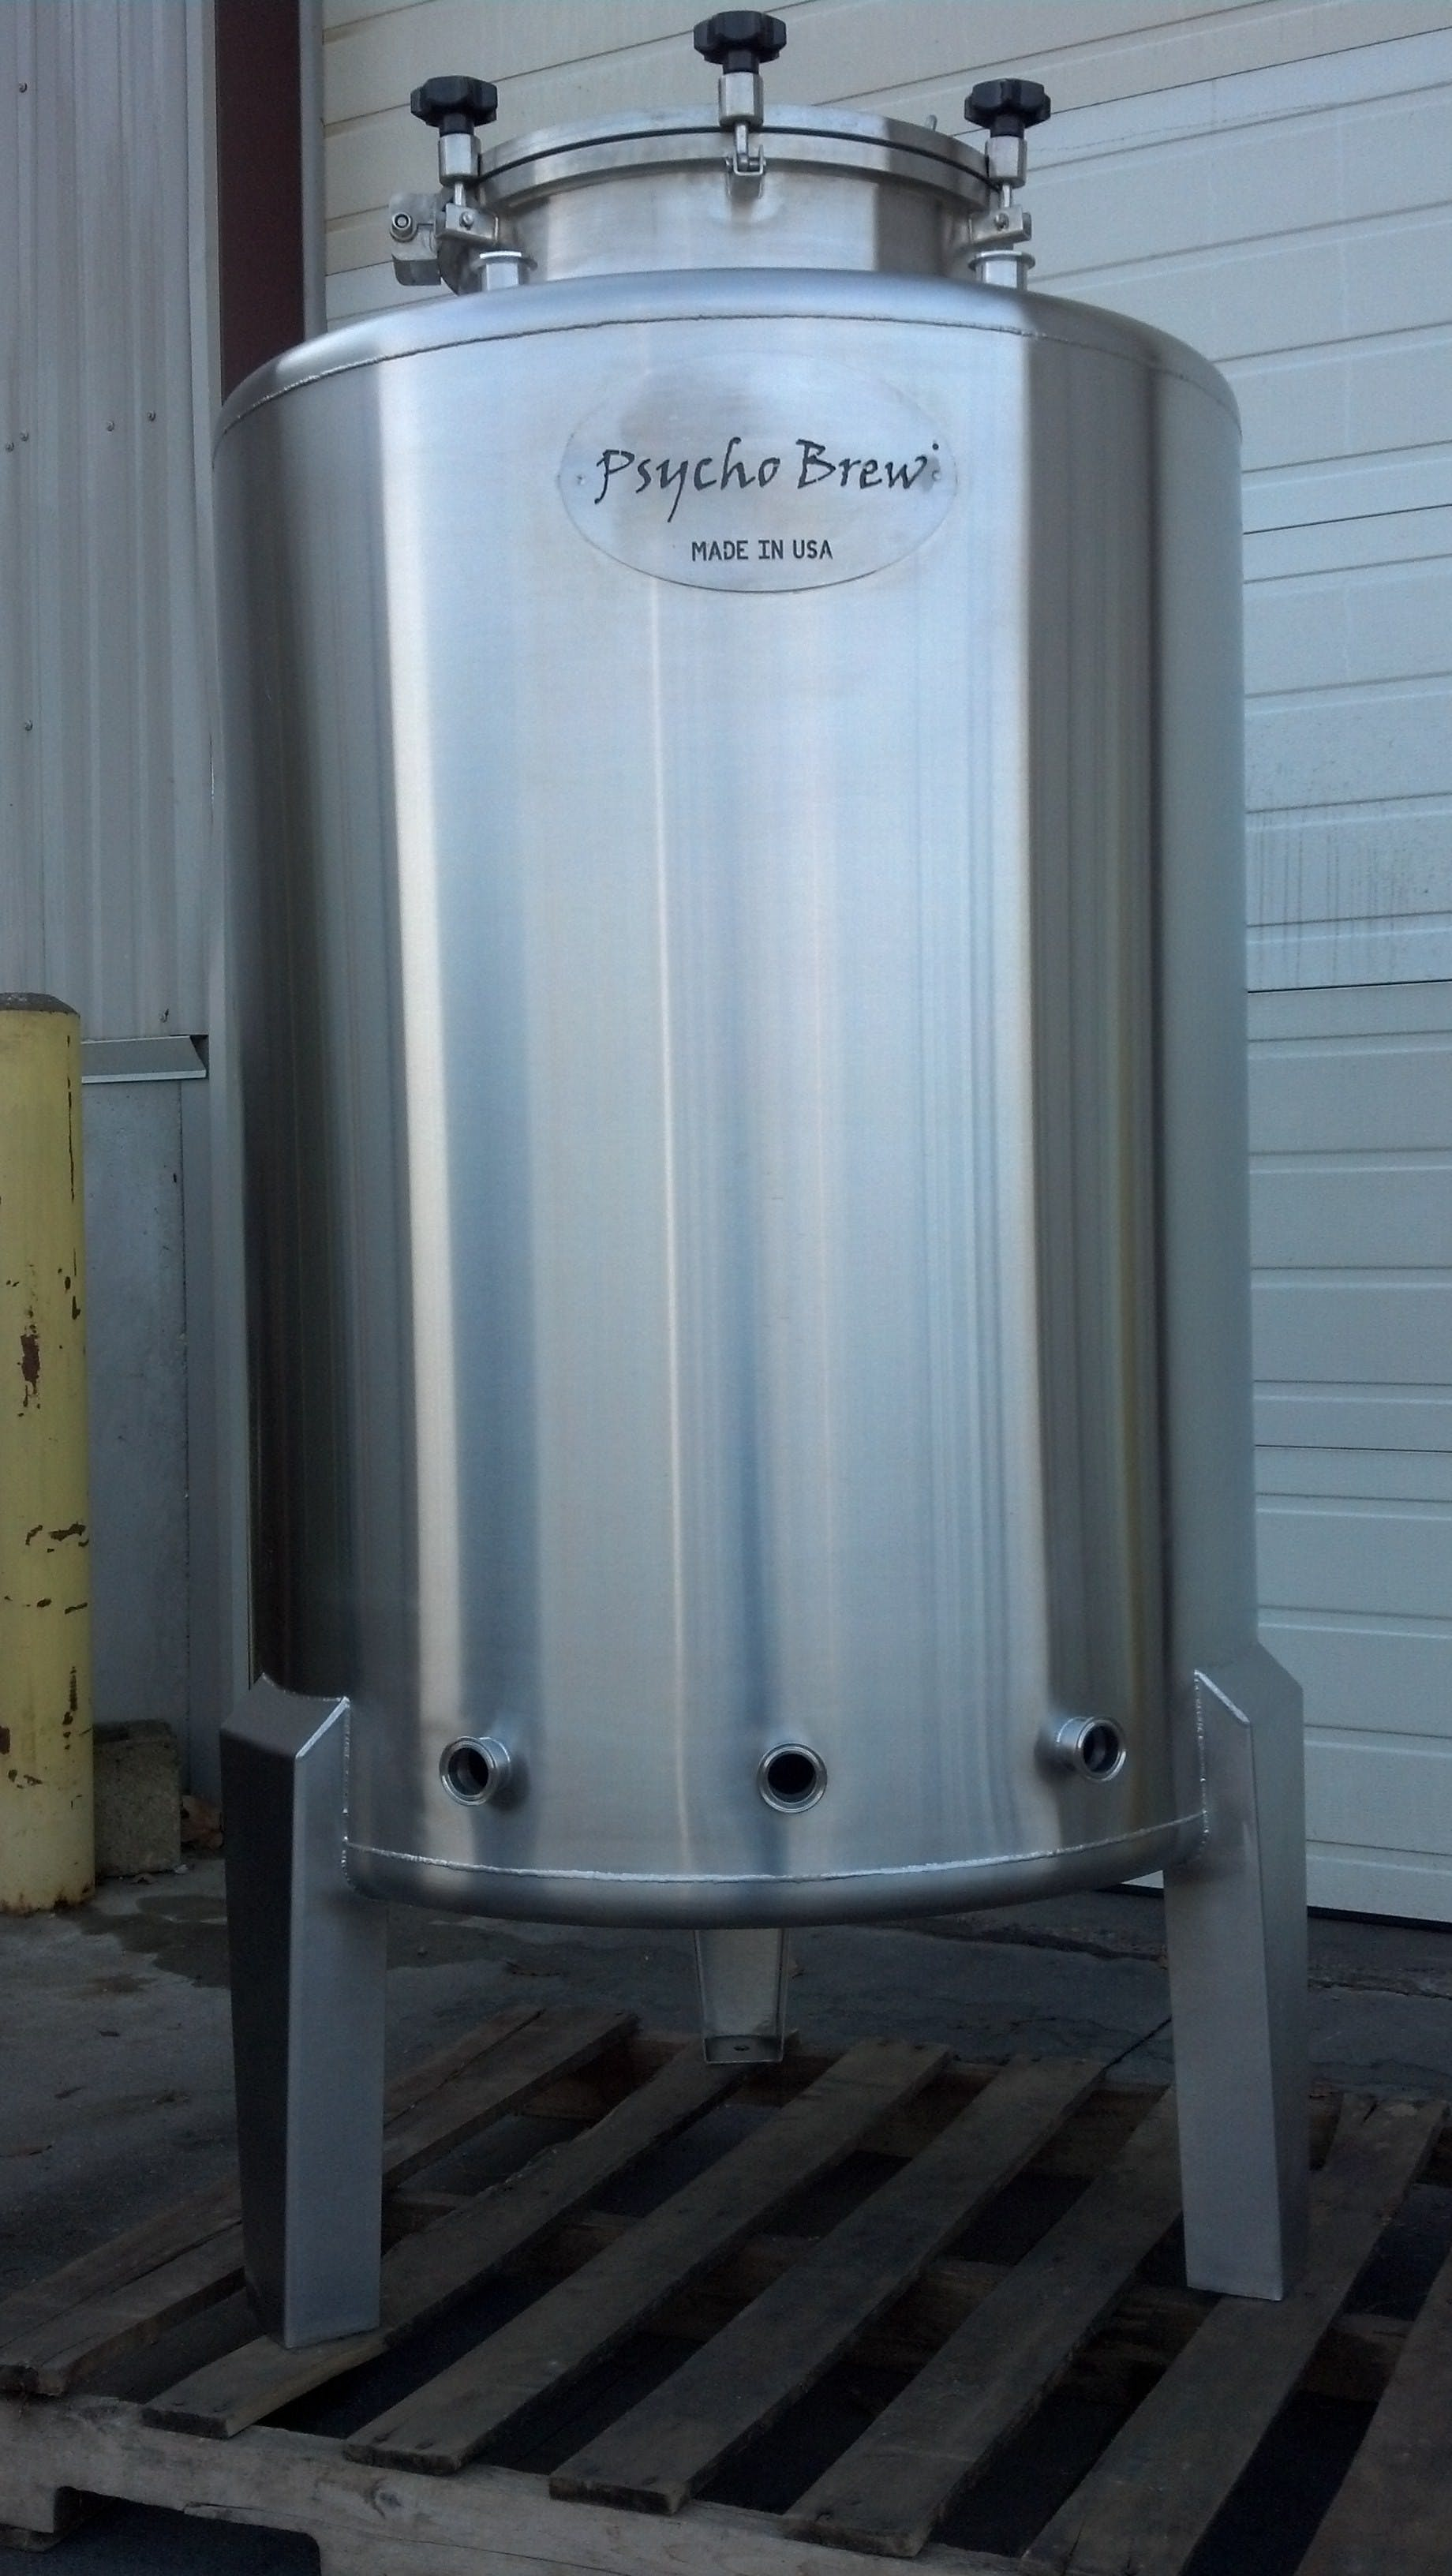 5 bbl Single Walled Brite Tank Bright tank sold by Psycho Brew